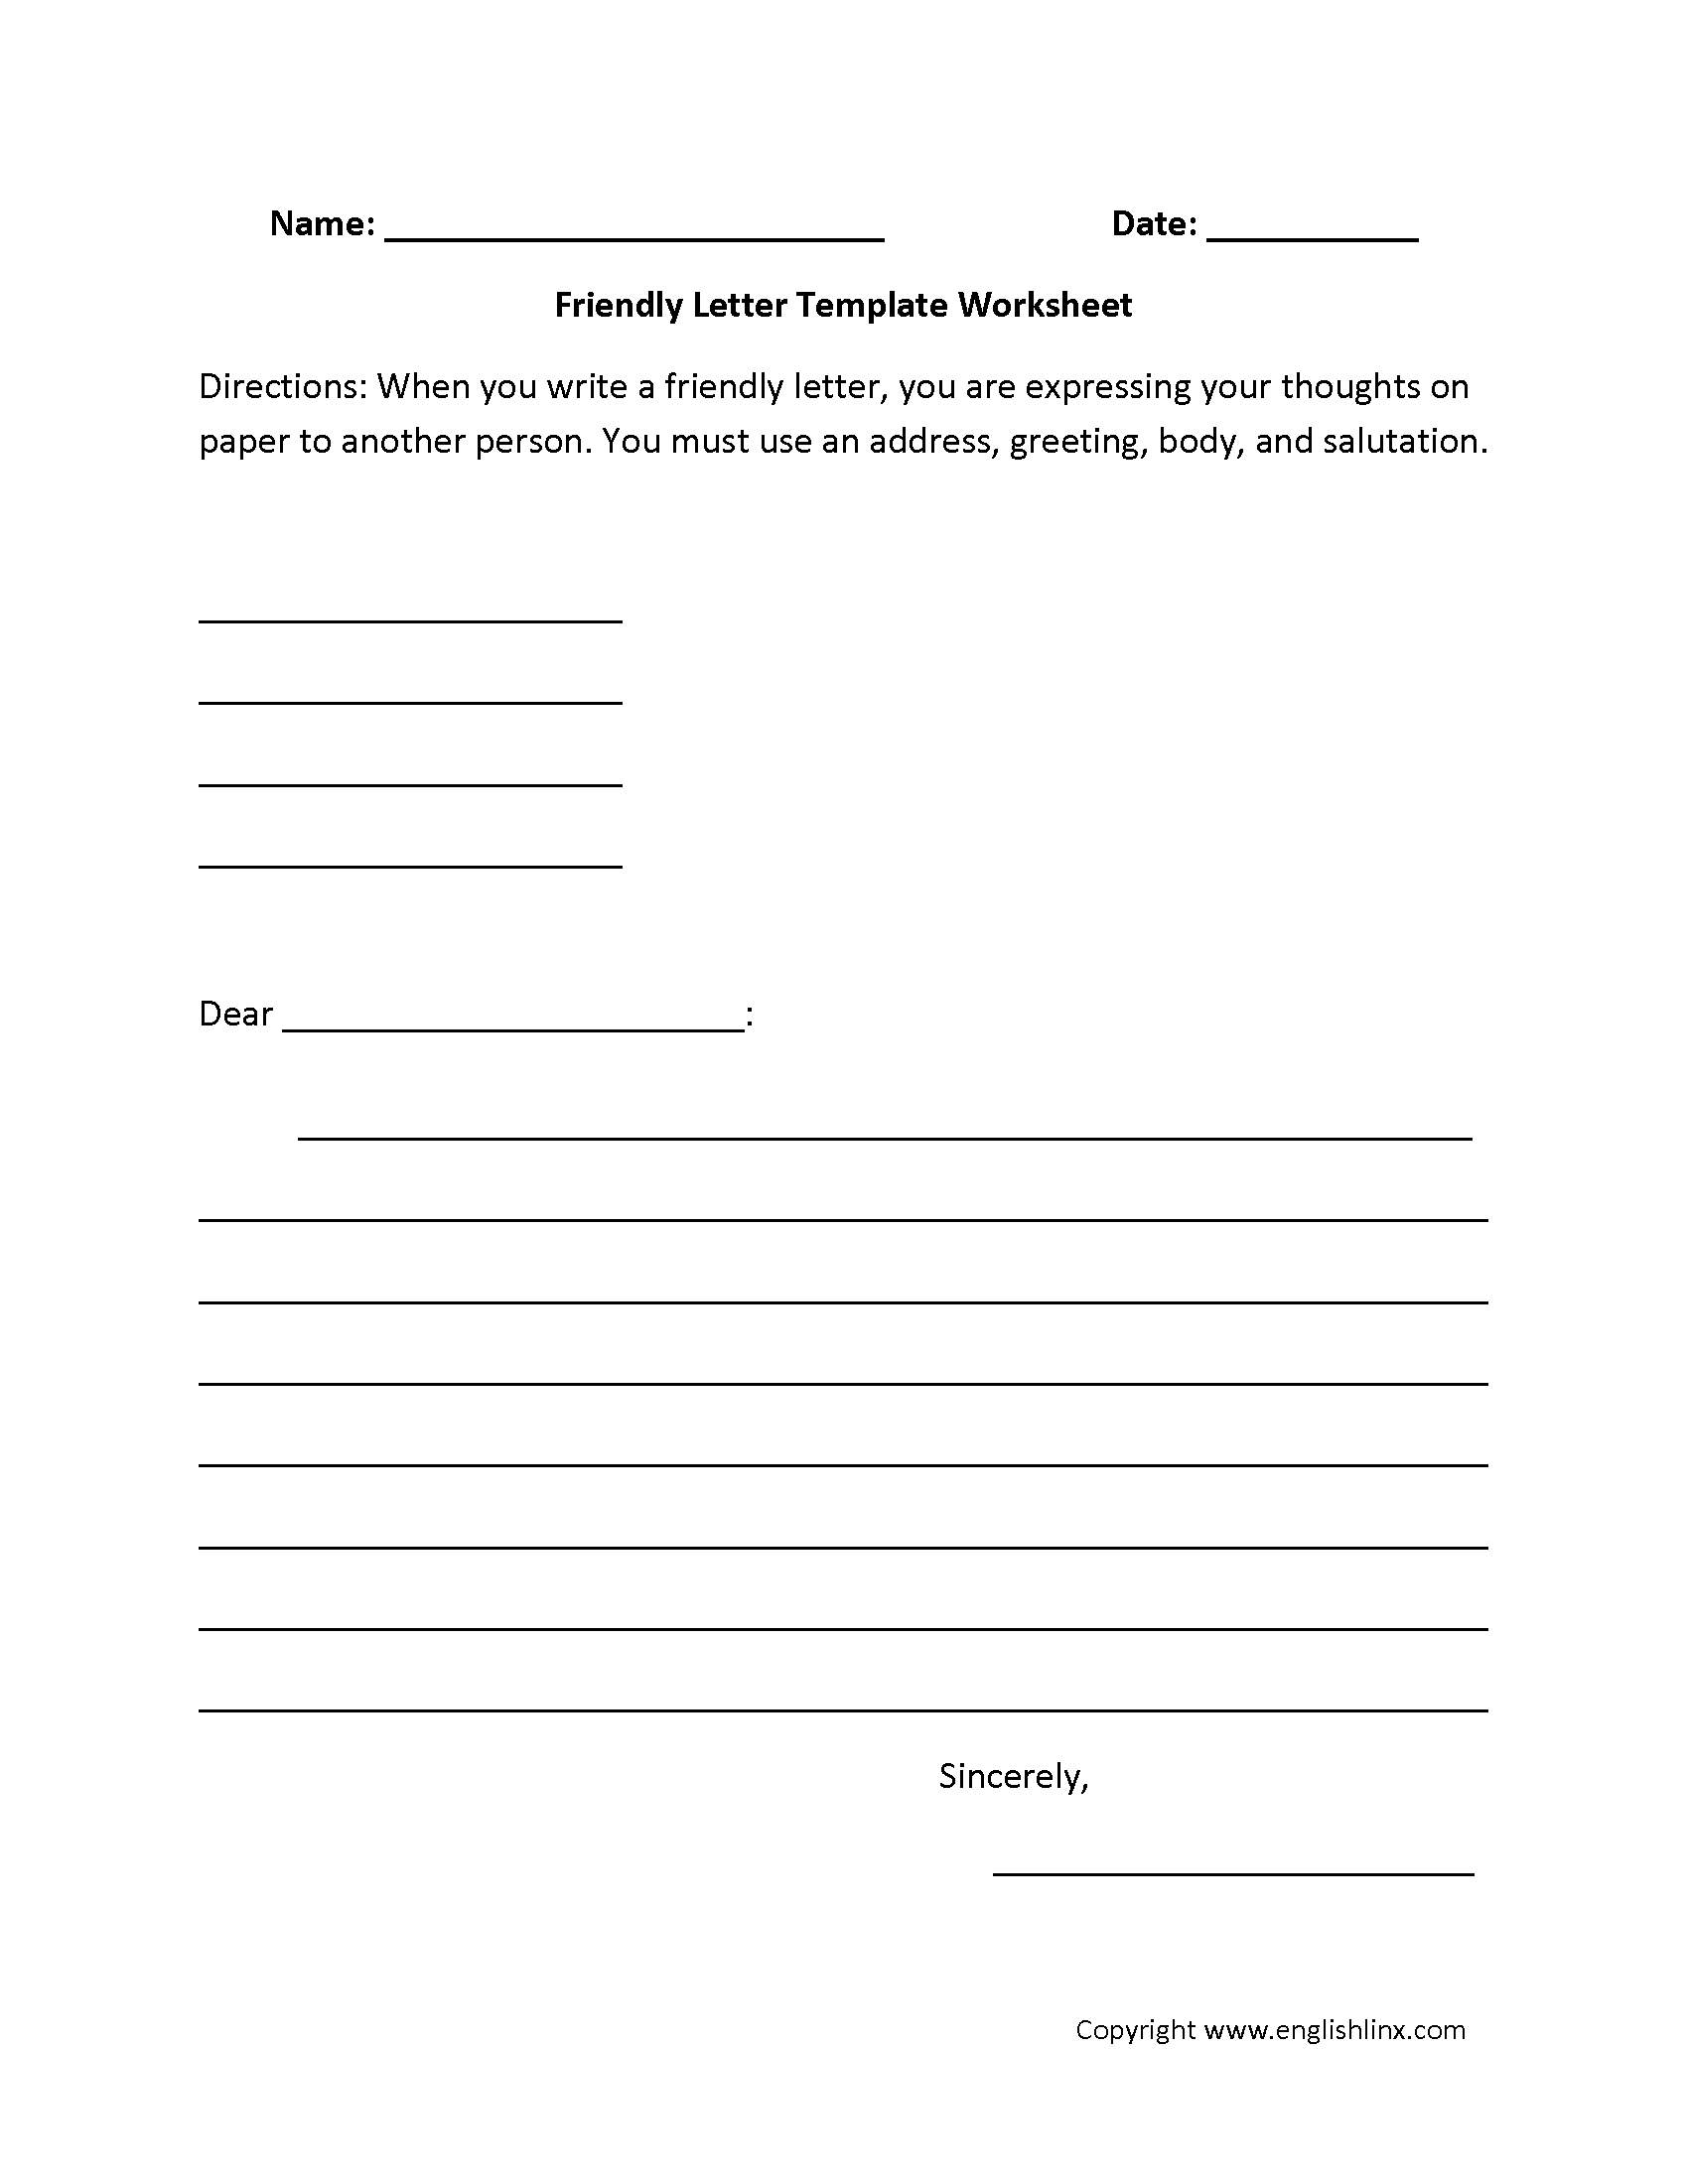 How To Write Letter Letter Writing Worksheets  Engwriting  Pinterest  Writing .